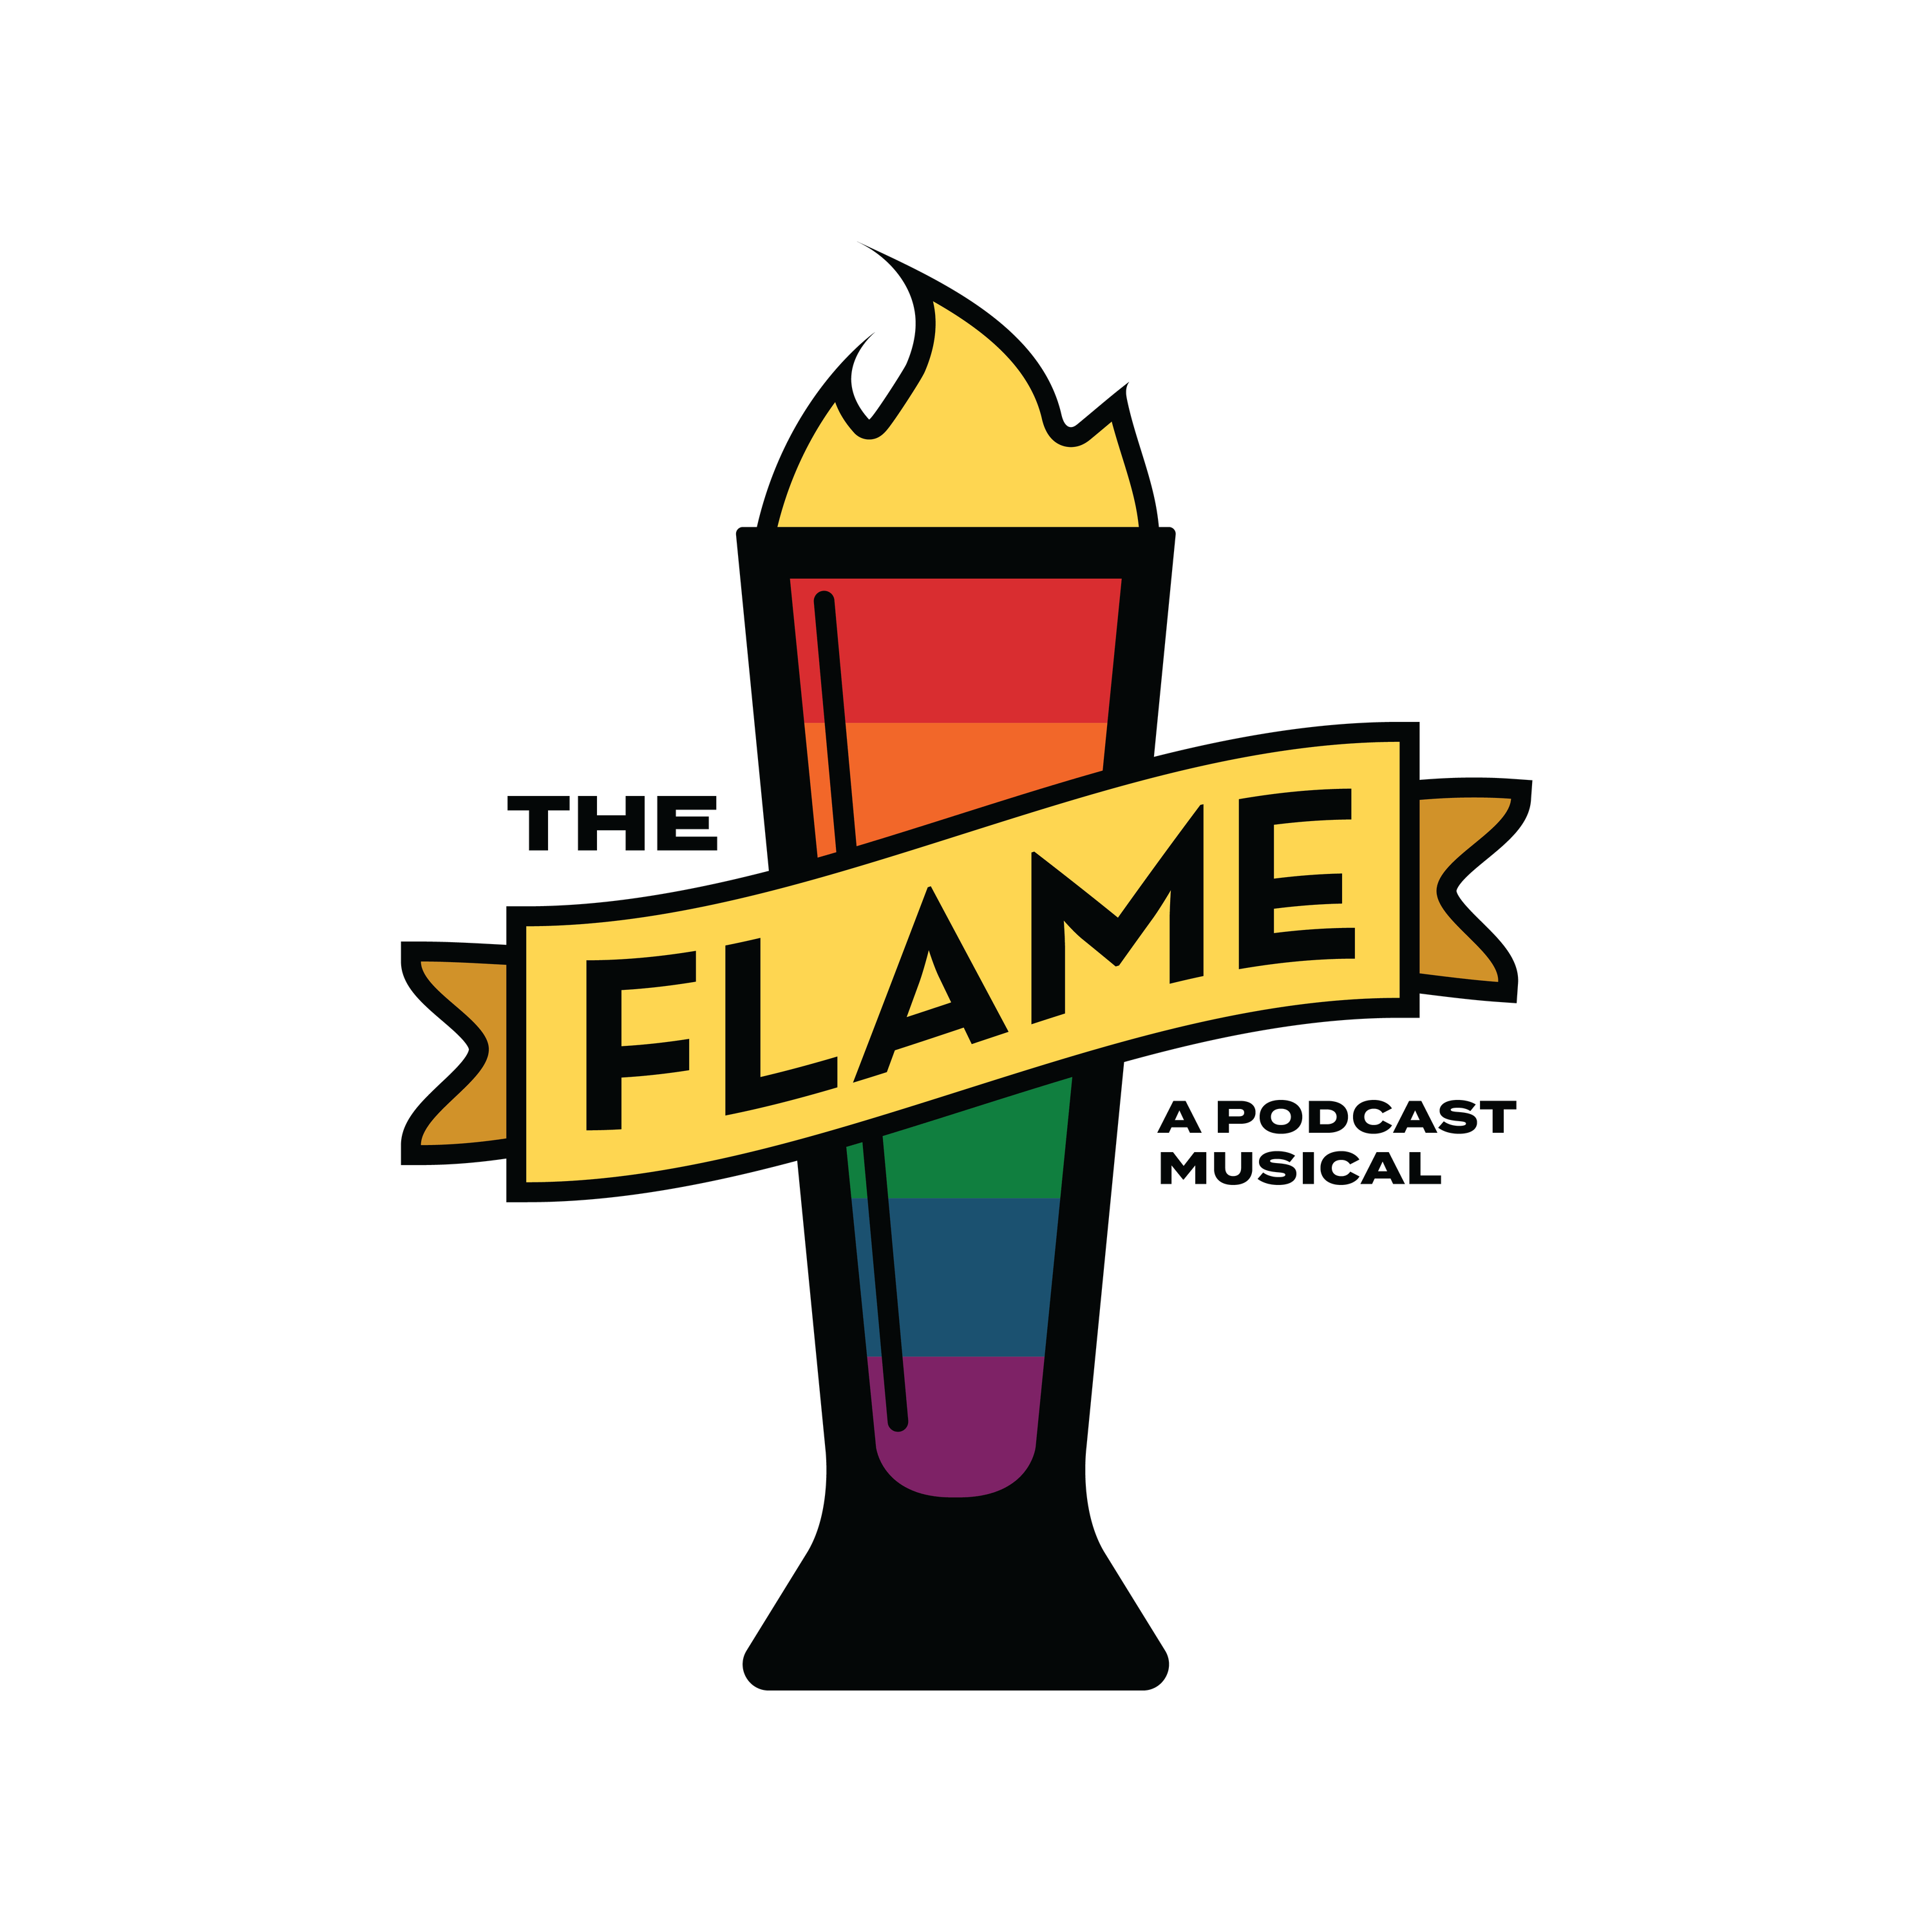 Episode 1 - Welcome to The Flame